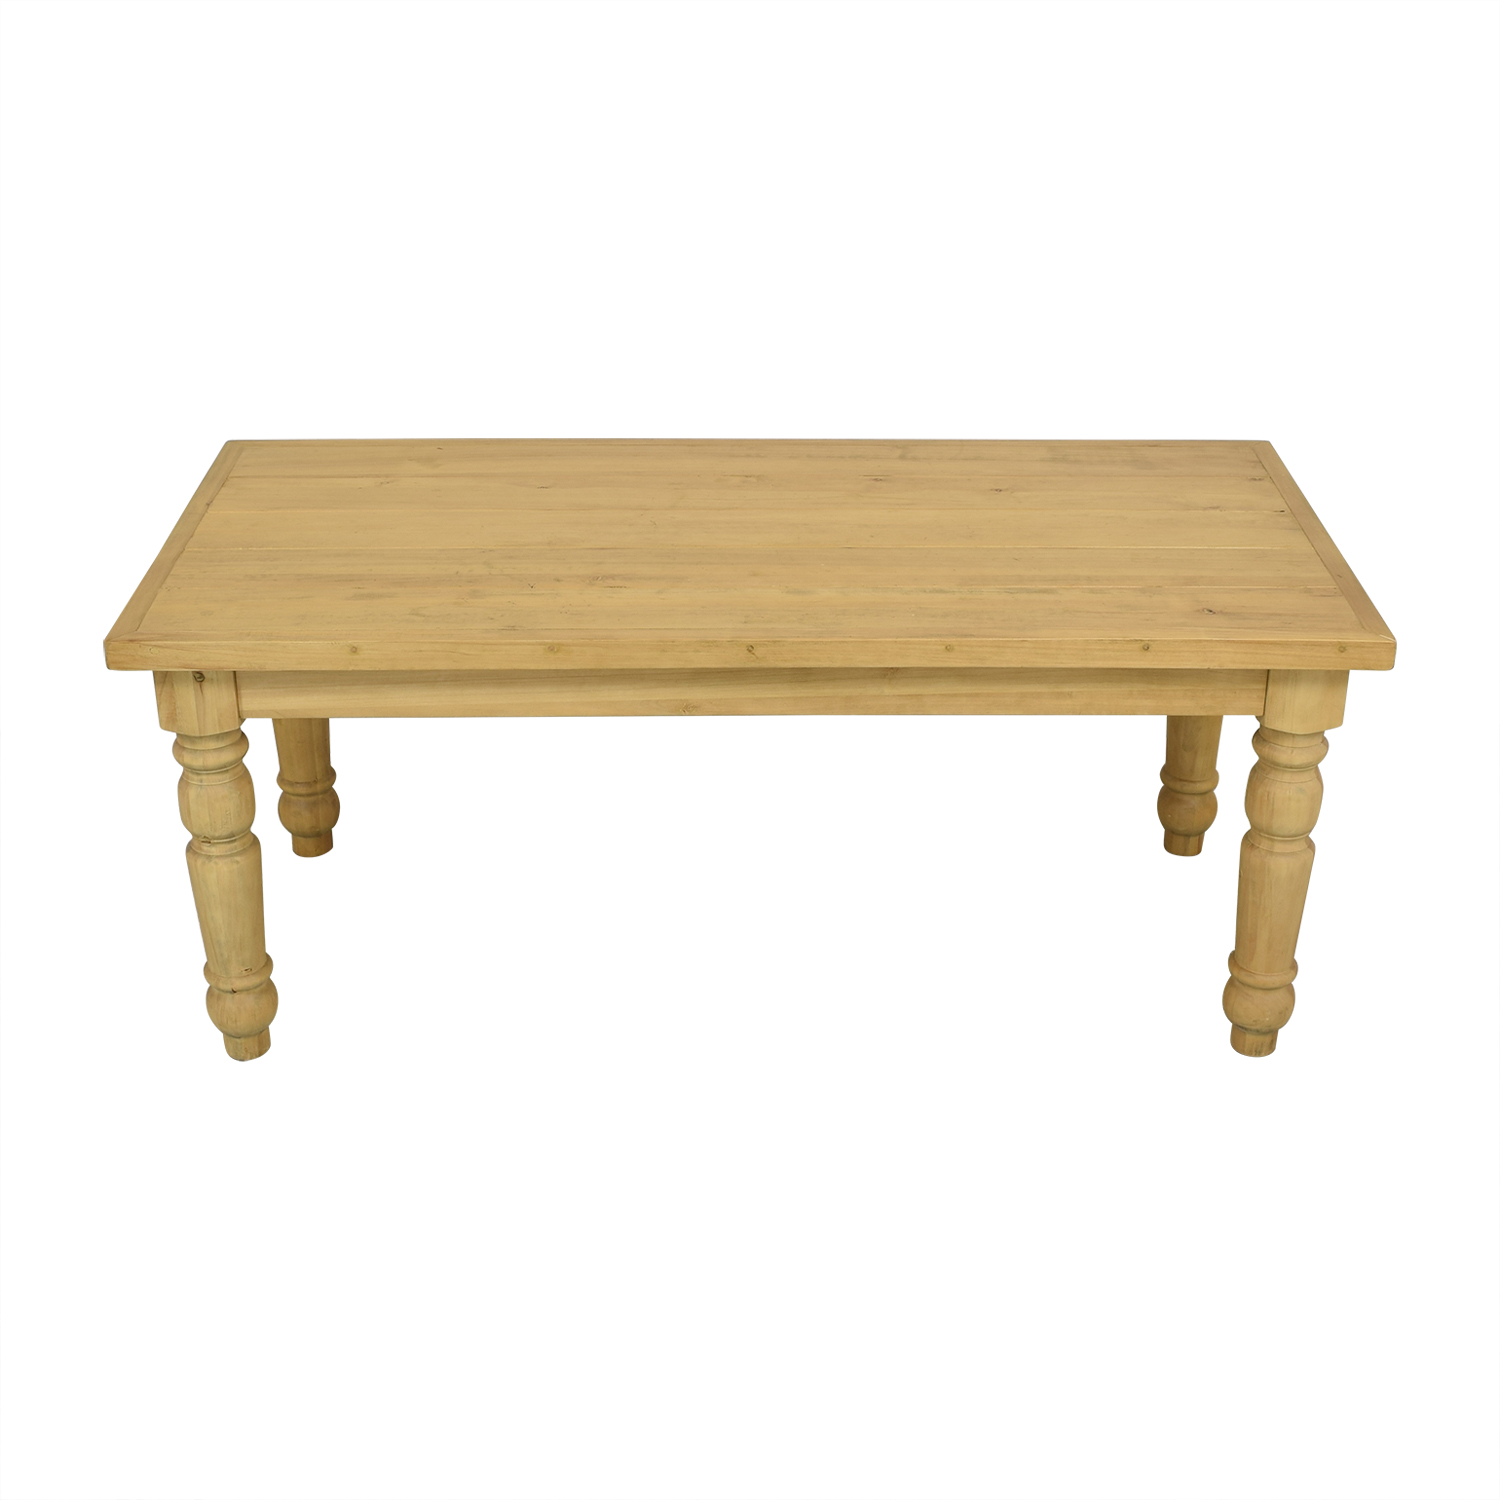 Structube Structube Dining Table coupon